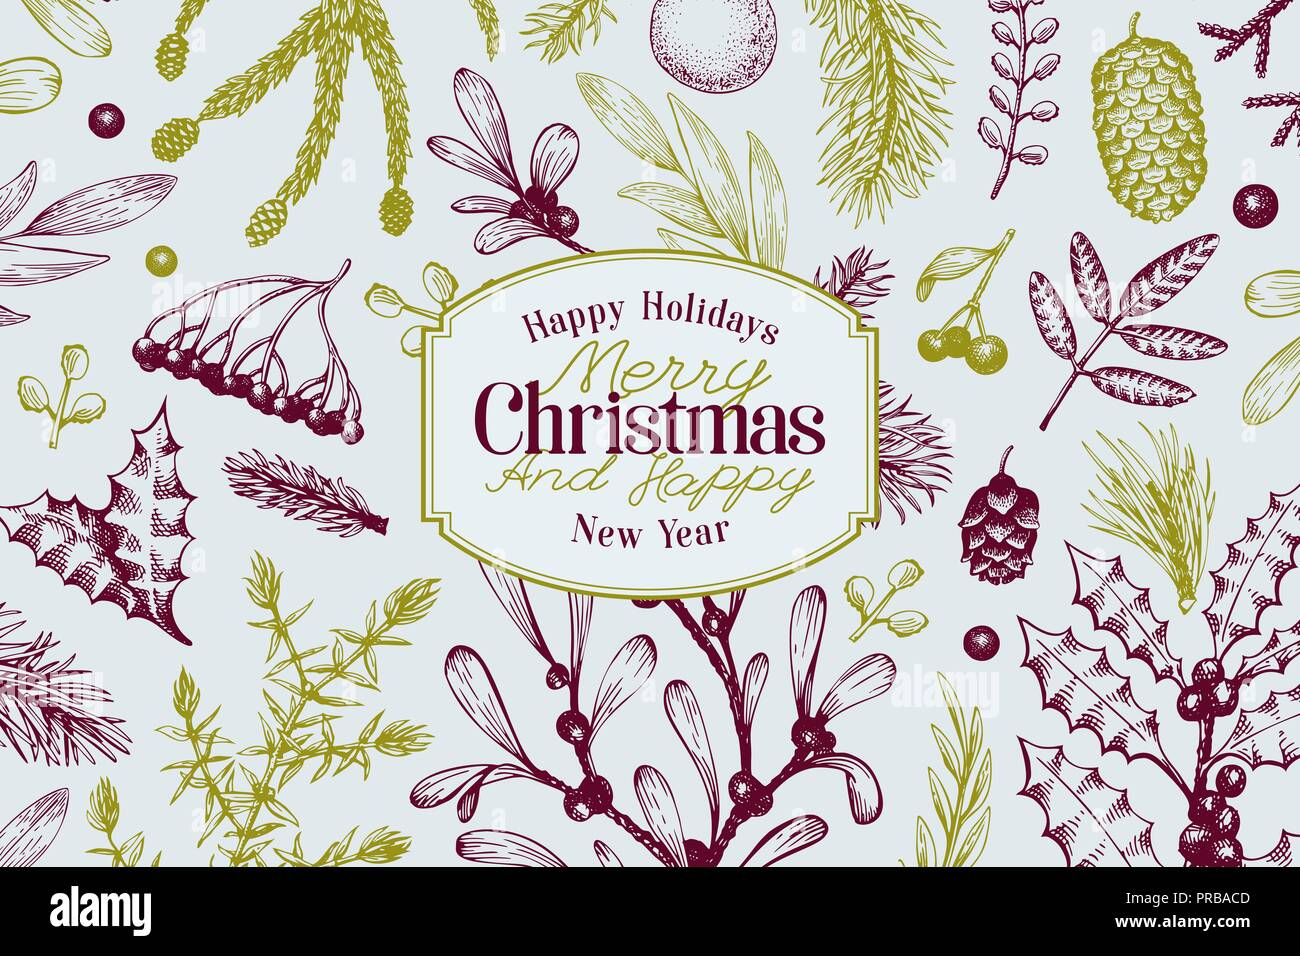 Greeting Christmas card in retro style. Vector hand drawn illustrations. Frame with coniferous, pine branches, berries, holly, mistletoe. Winter fores - Stock Vector